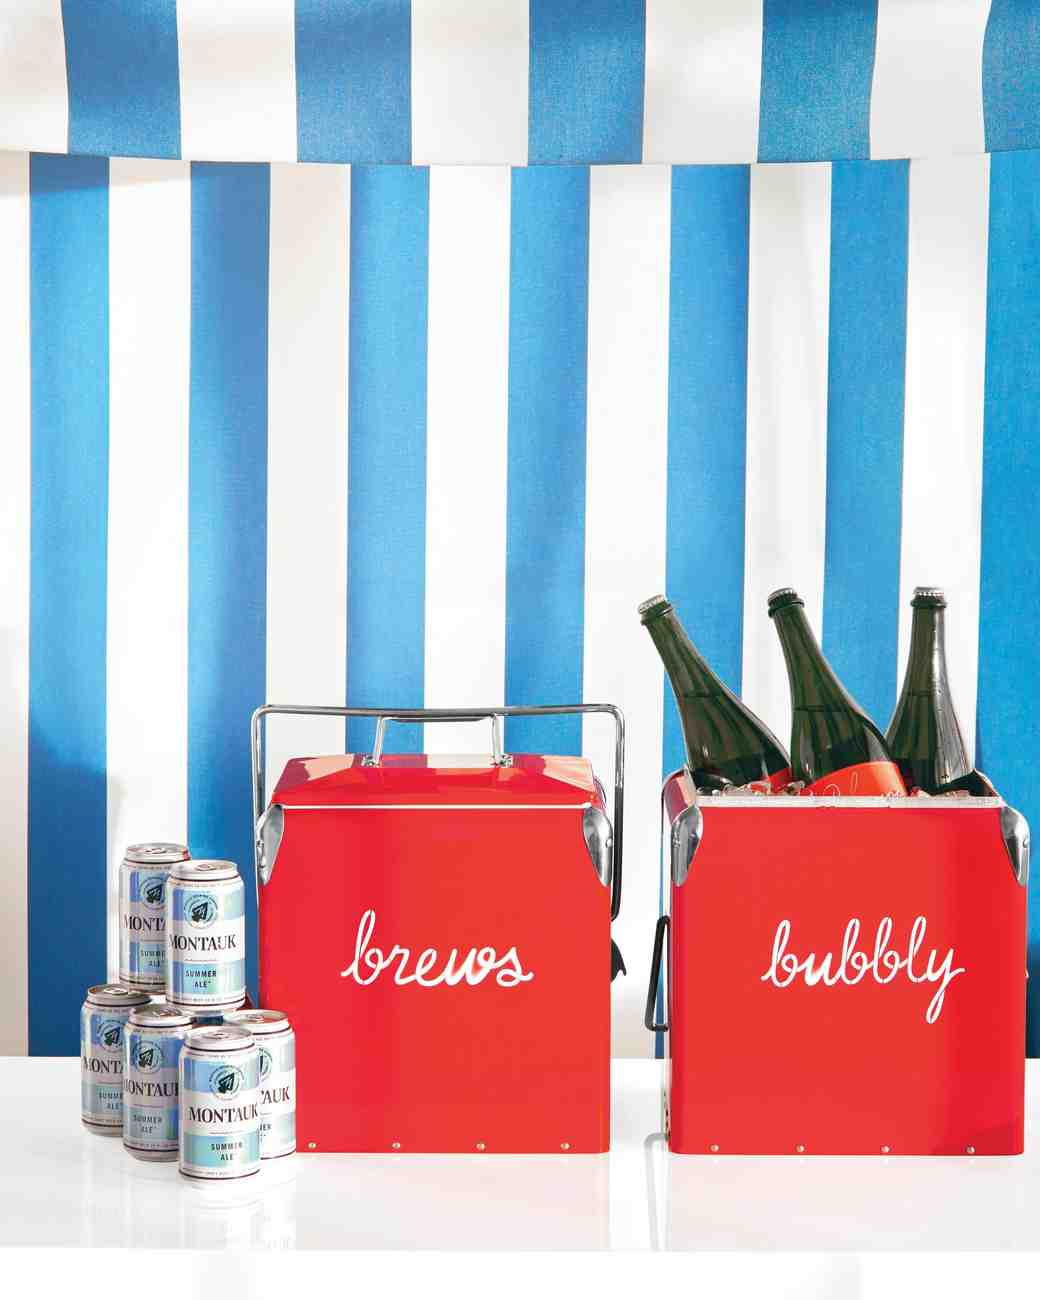 blue-red-wedding-colors-opener-cooler-drinks-823-d112667-comp.jpg